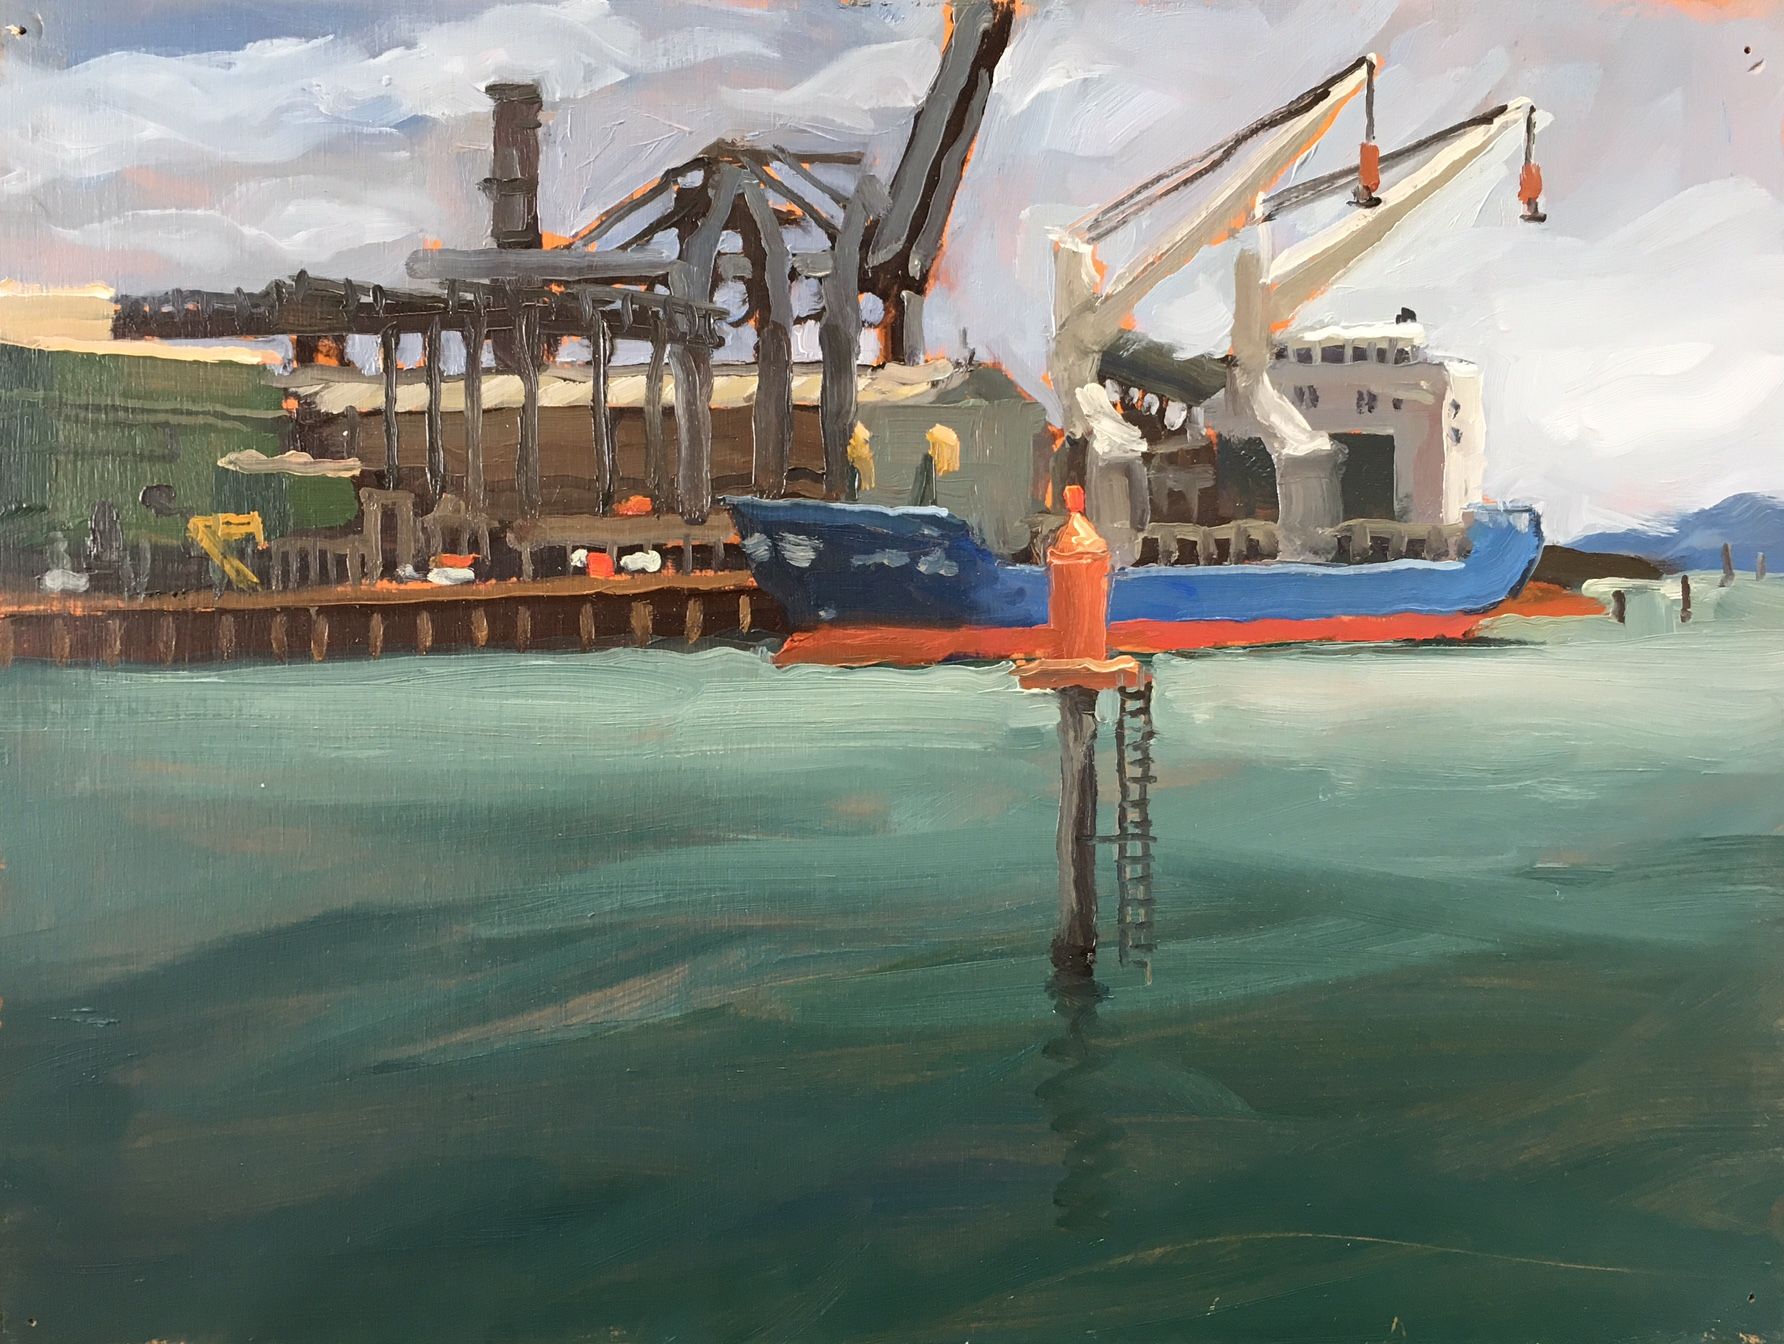 Port Pirrie, Oil on Canvas, 30 x 40cm, 2013